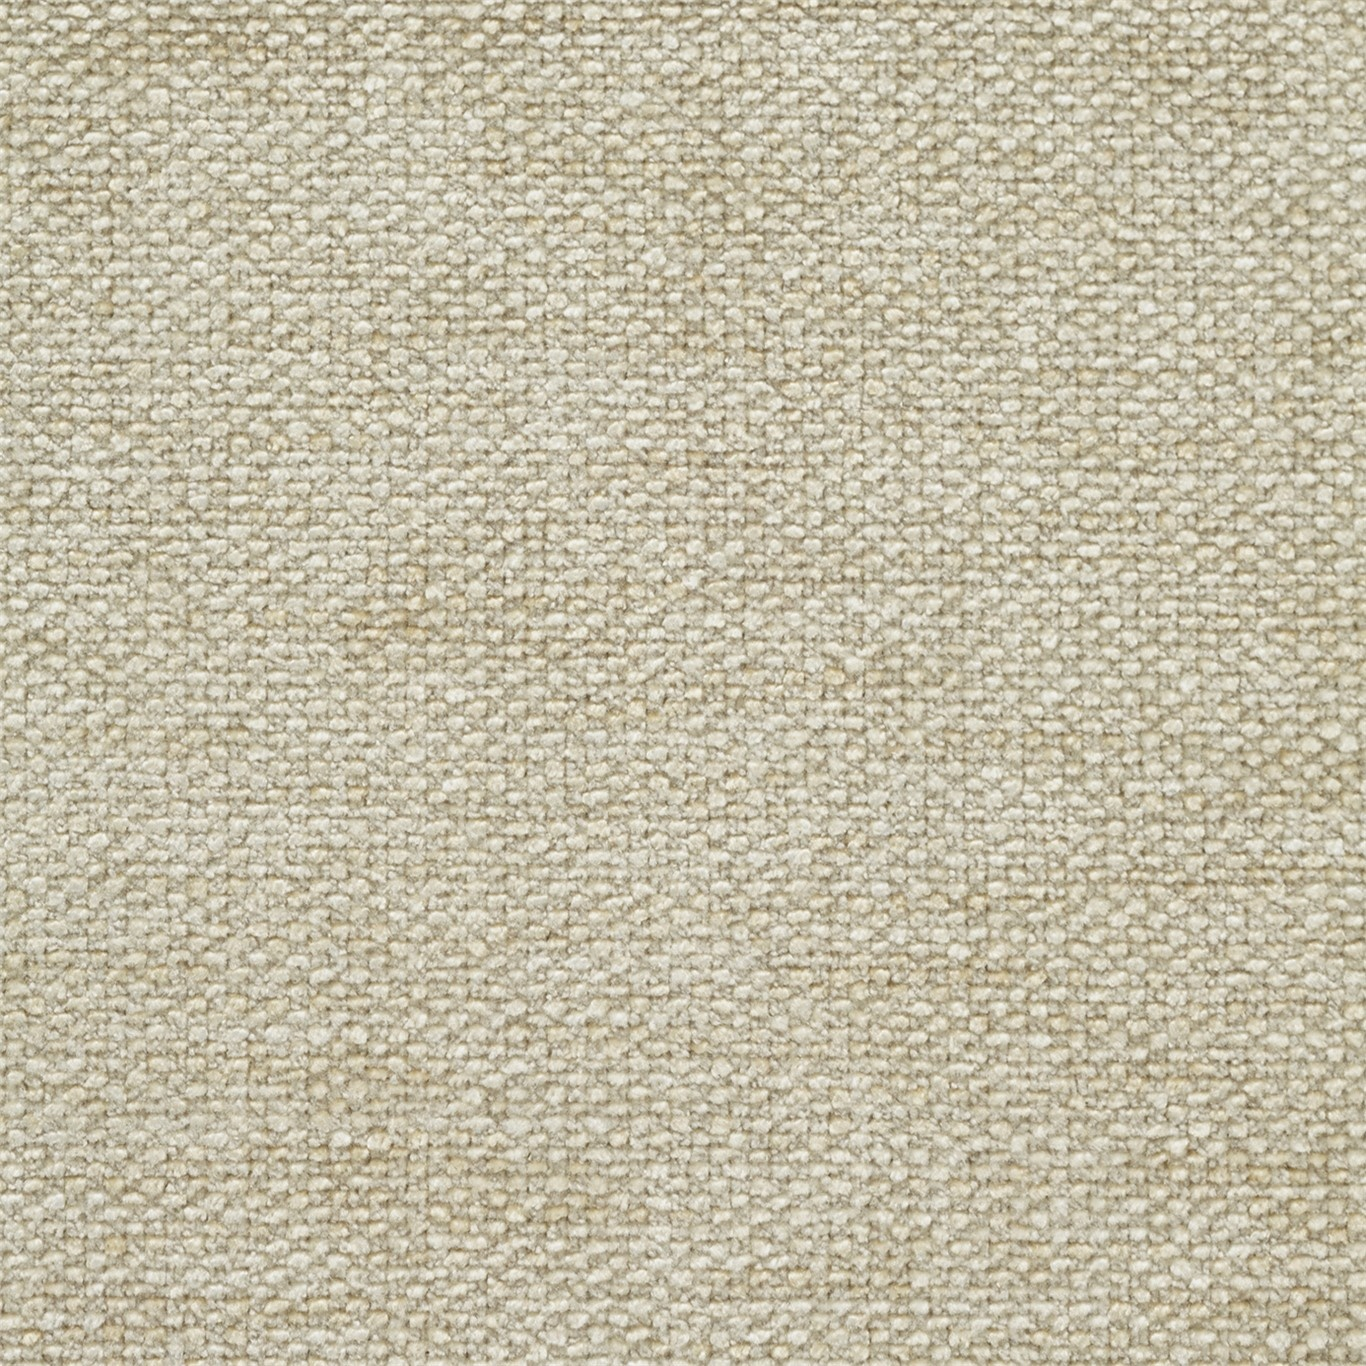 Image of Sanderson Moorbank Almond Fabric 236295